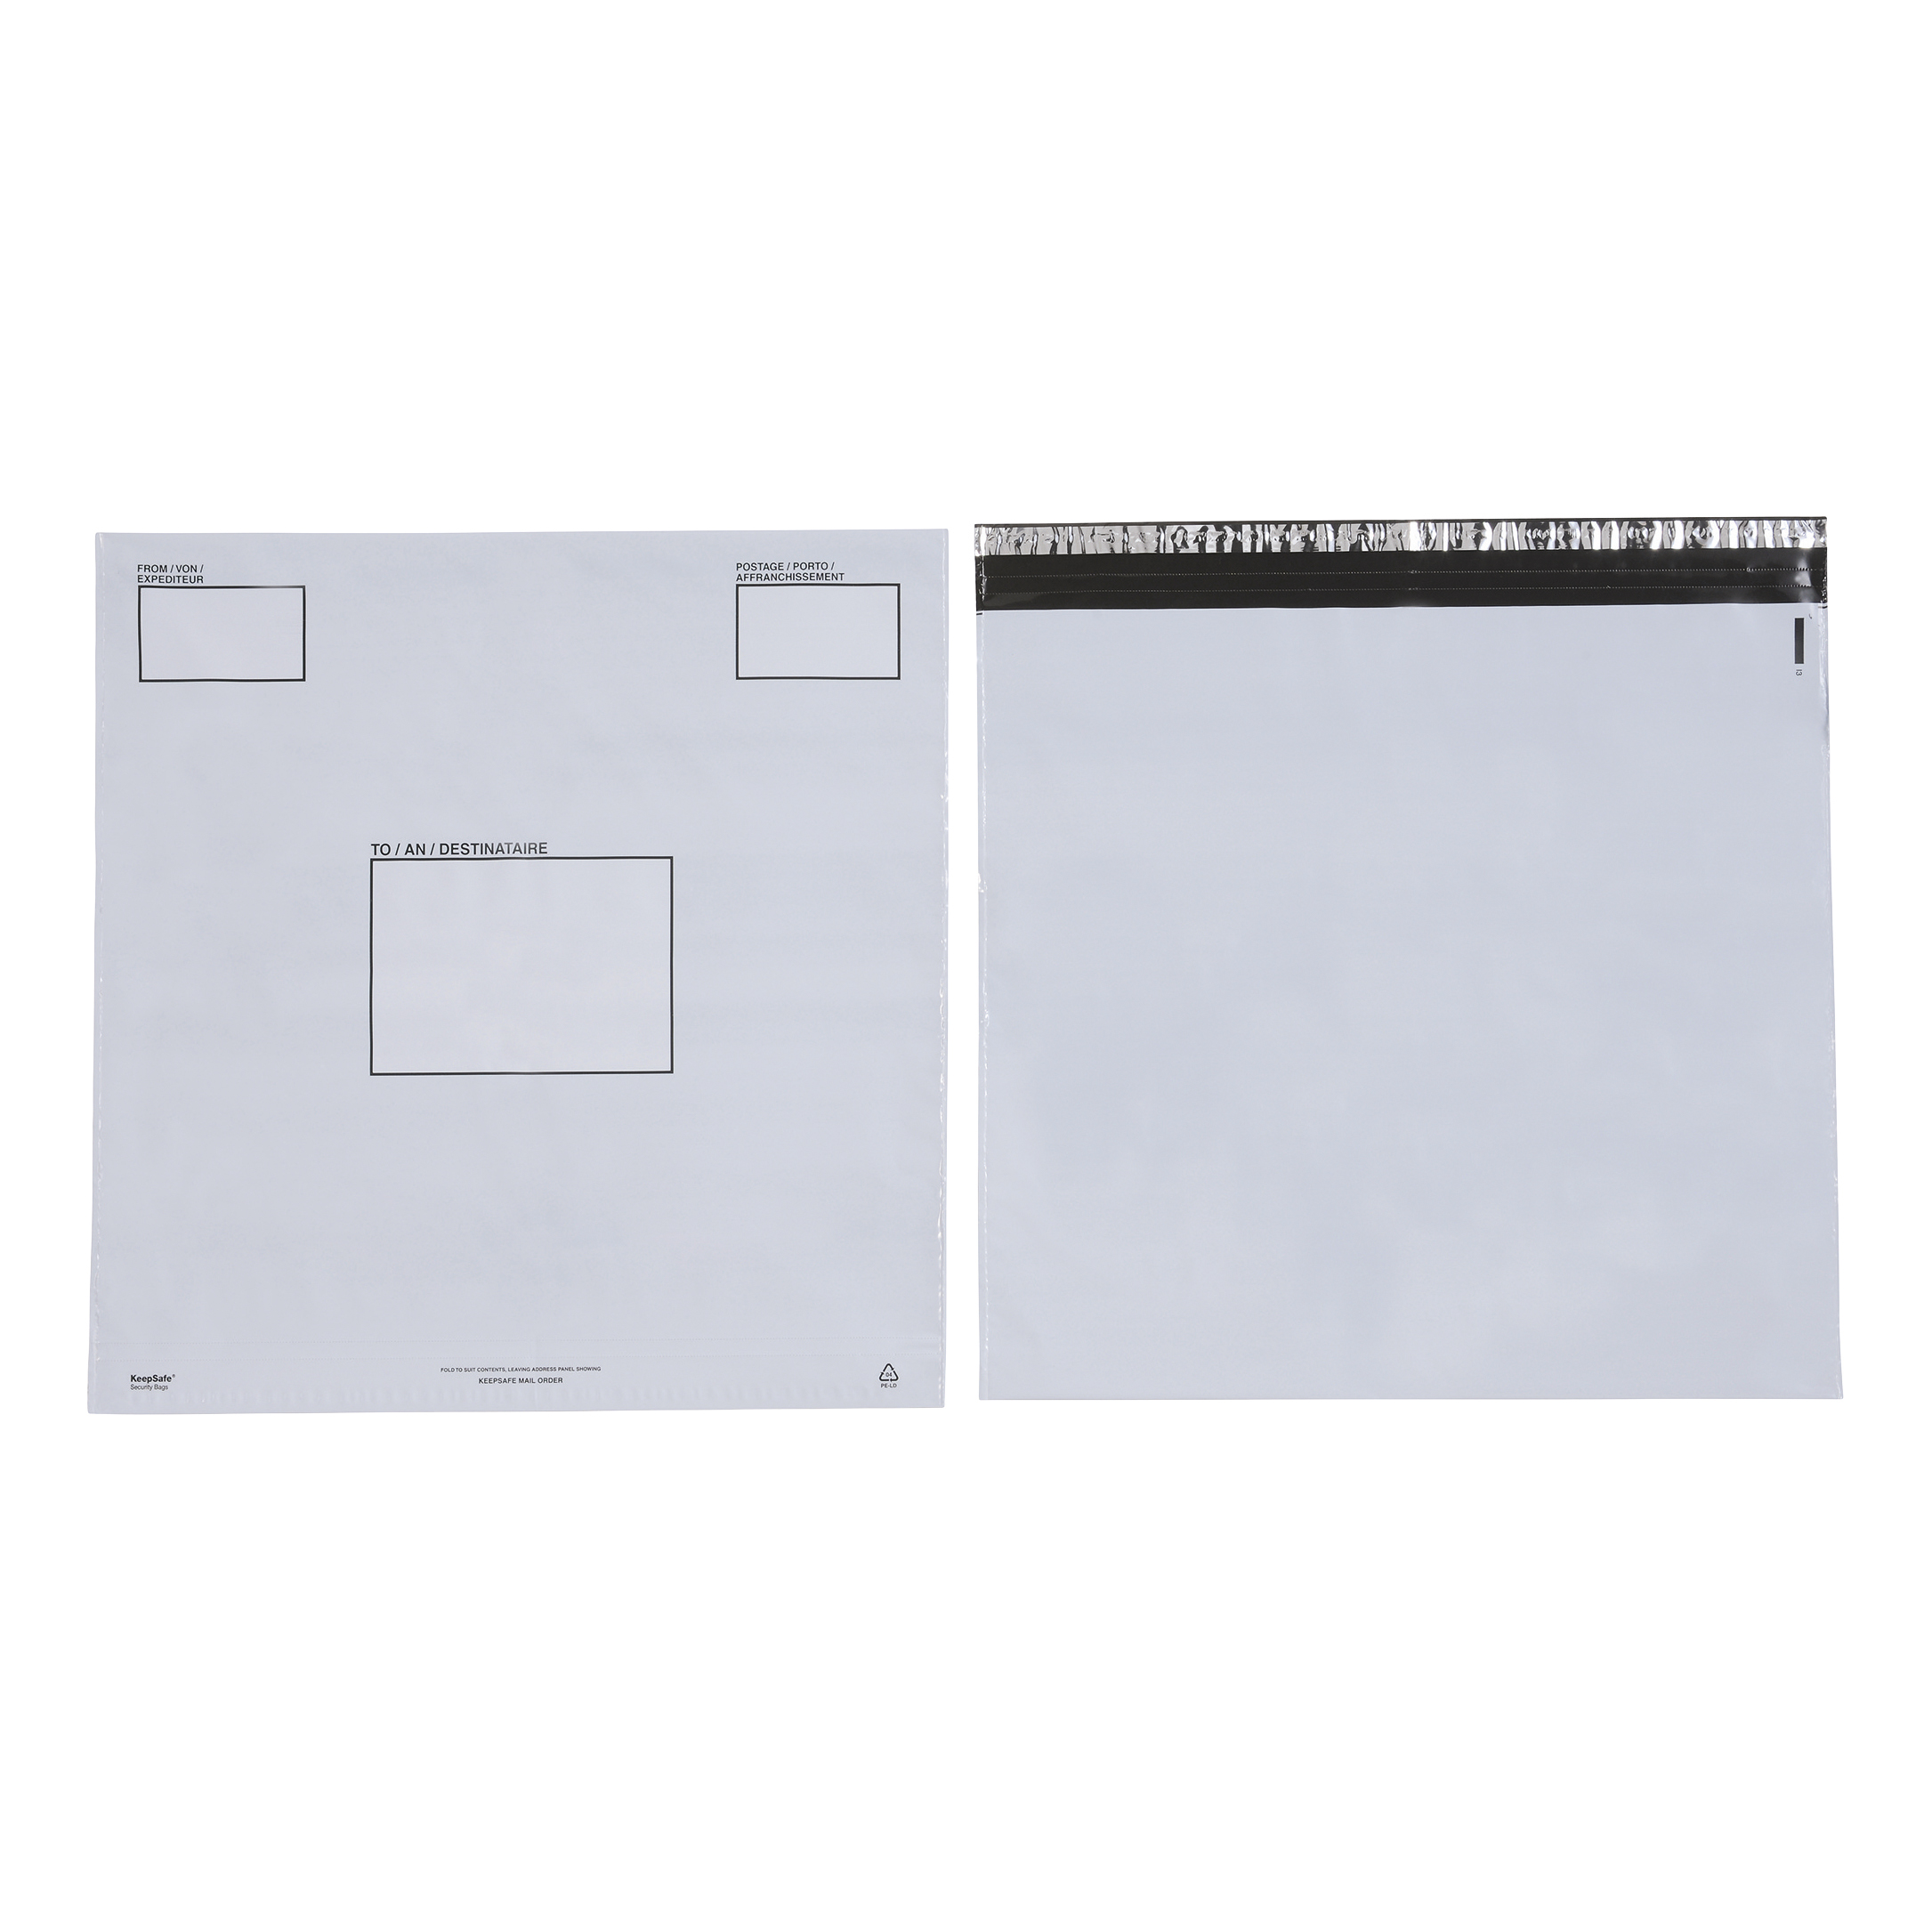 Polythene Envelopes Keepsafe Envelope Extra Strong Polythene Opaque DX W460xH430mm Peel & Seal Ref KSV-MO6 [Box 100]